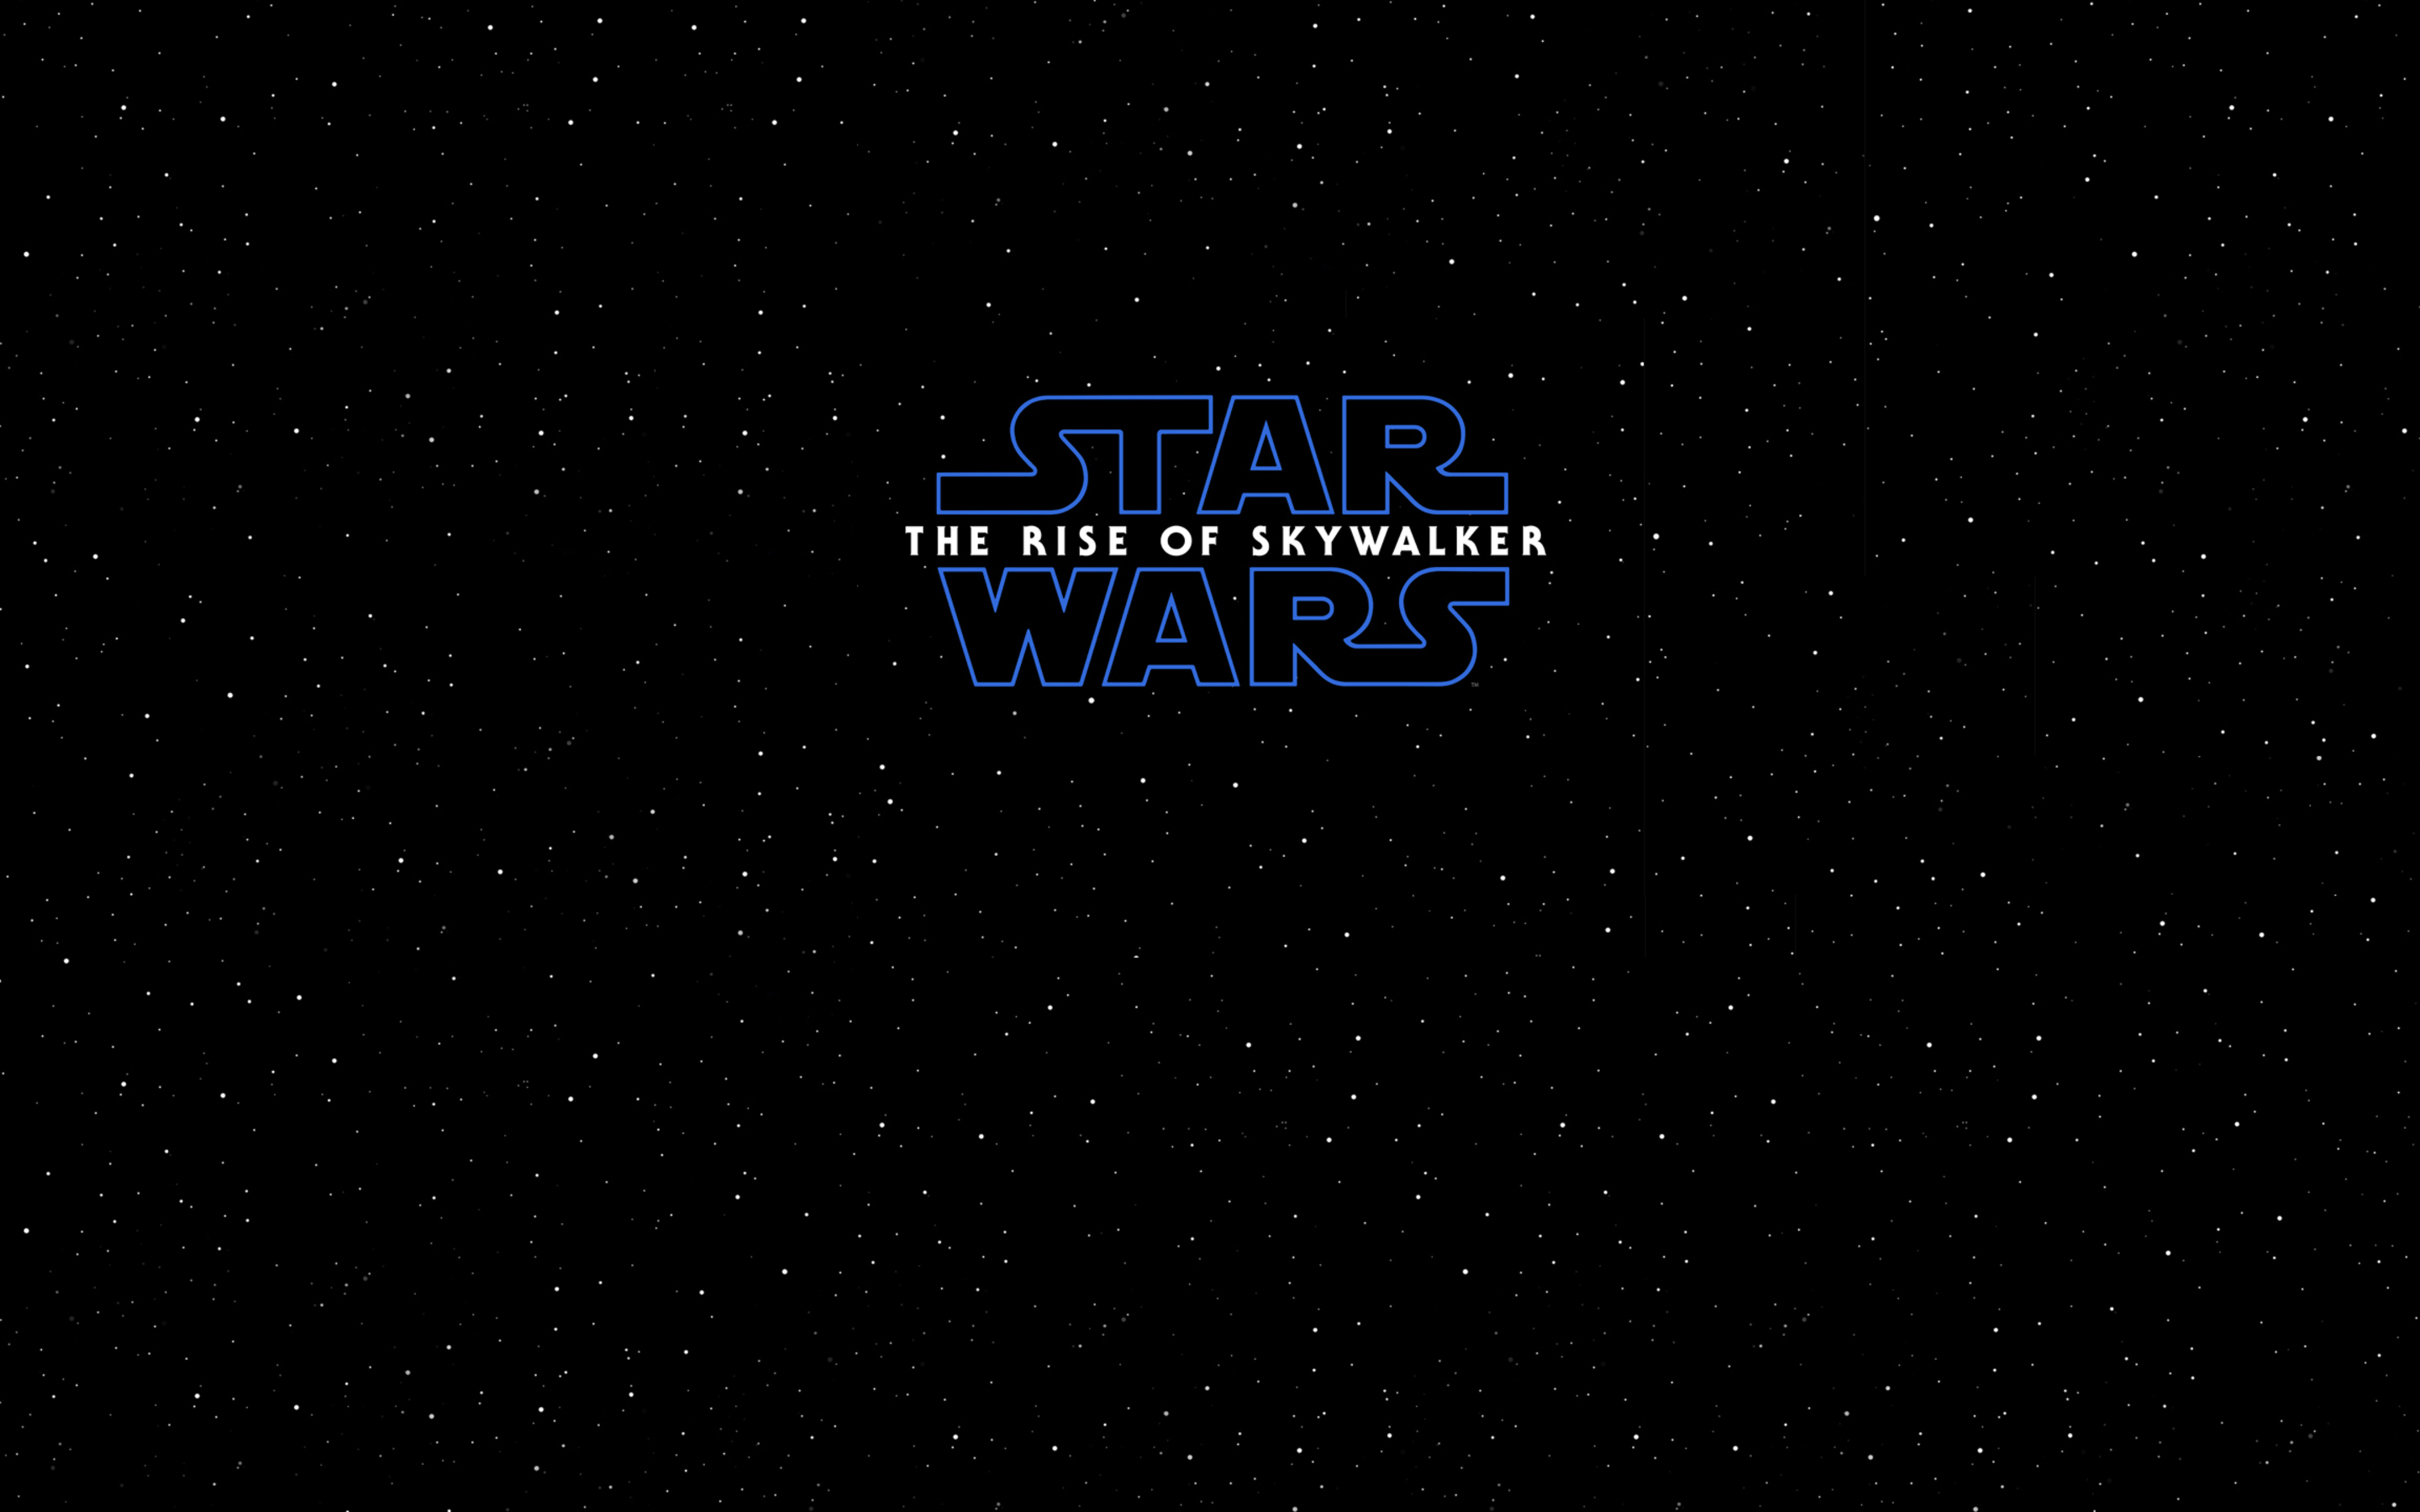 2880x1800 Star Wars The Rise Of Skywalker 2019 Macbook Pro Retina Hd 4k Wallpapers Images Backgrounds Photos And Pictures